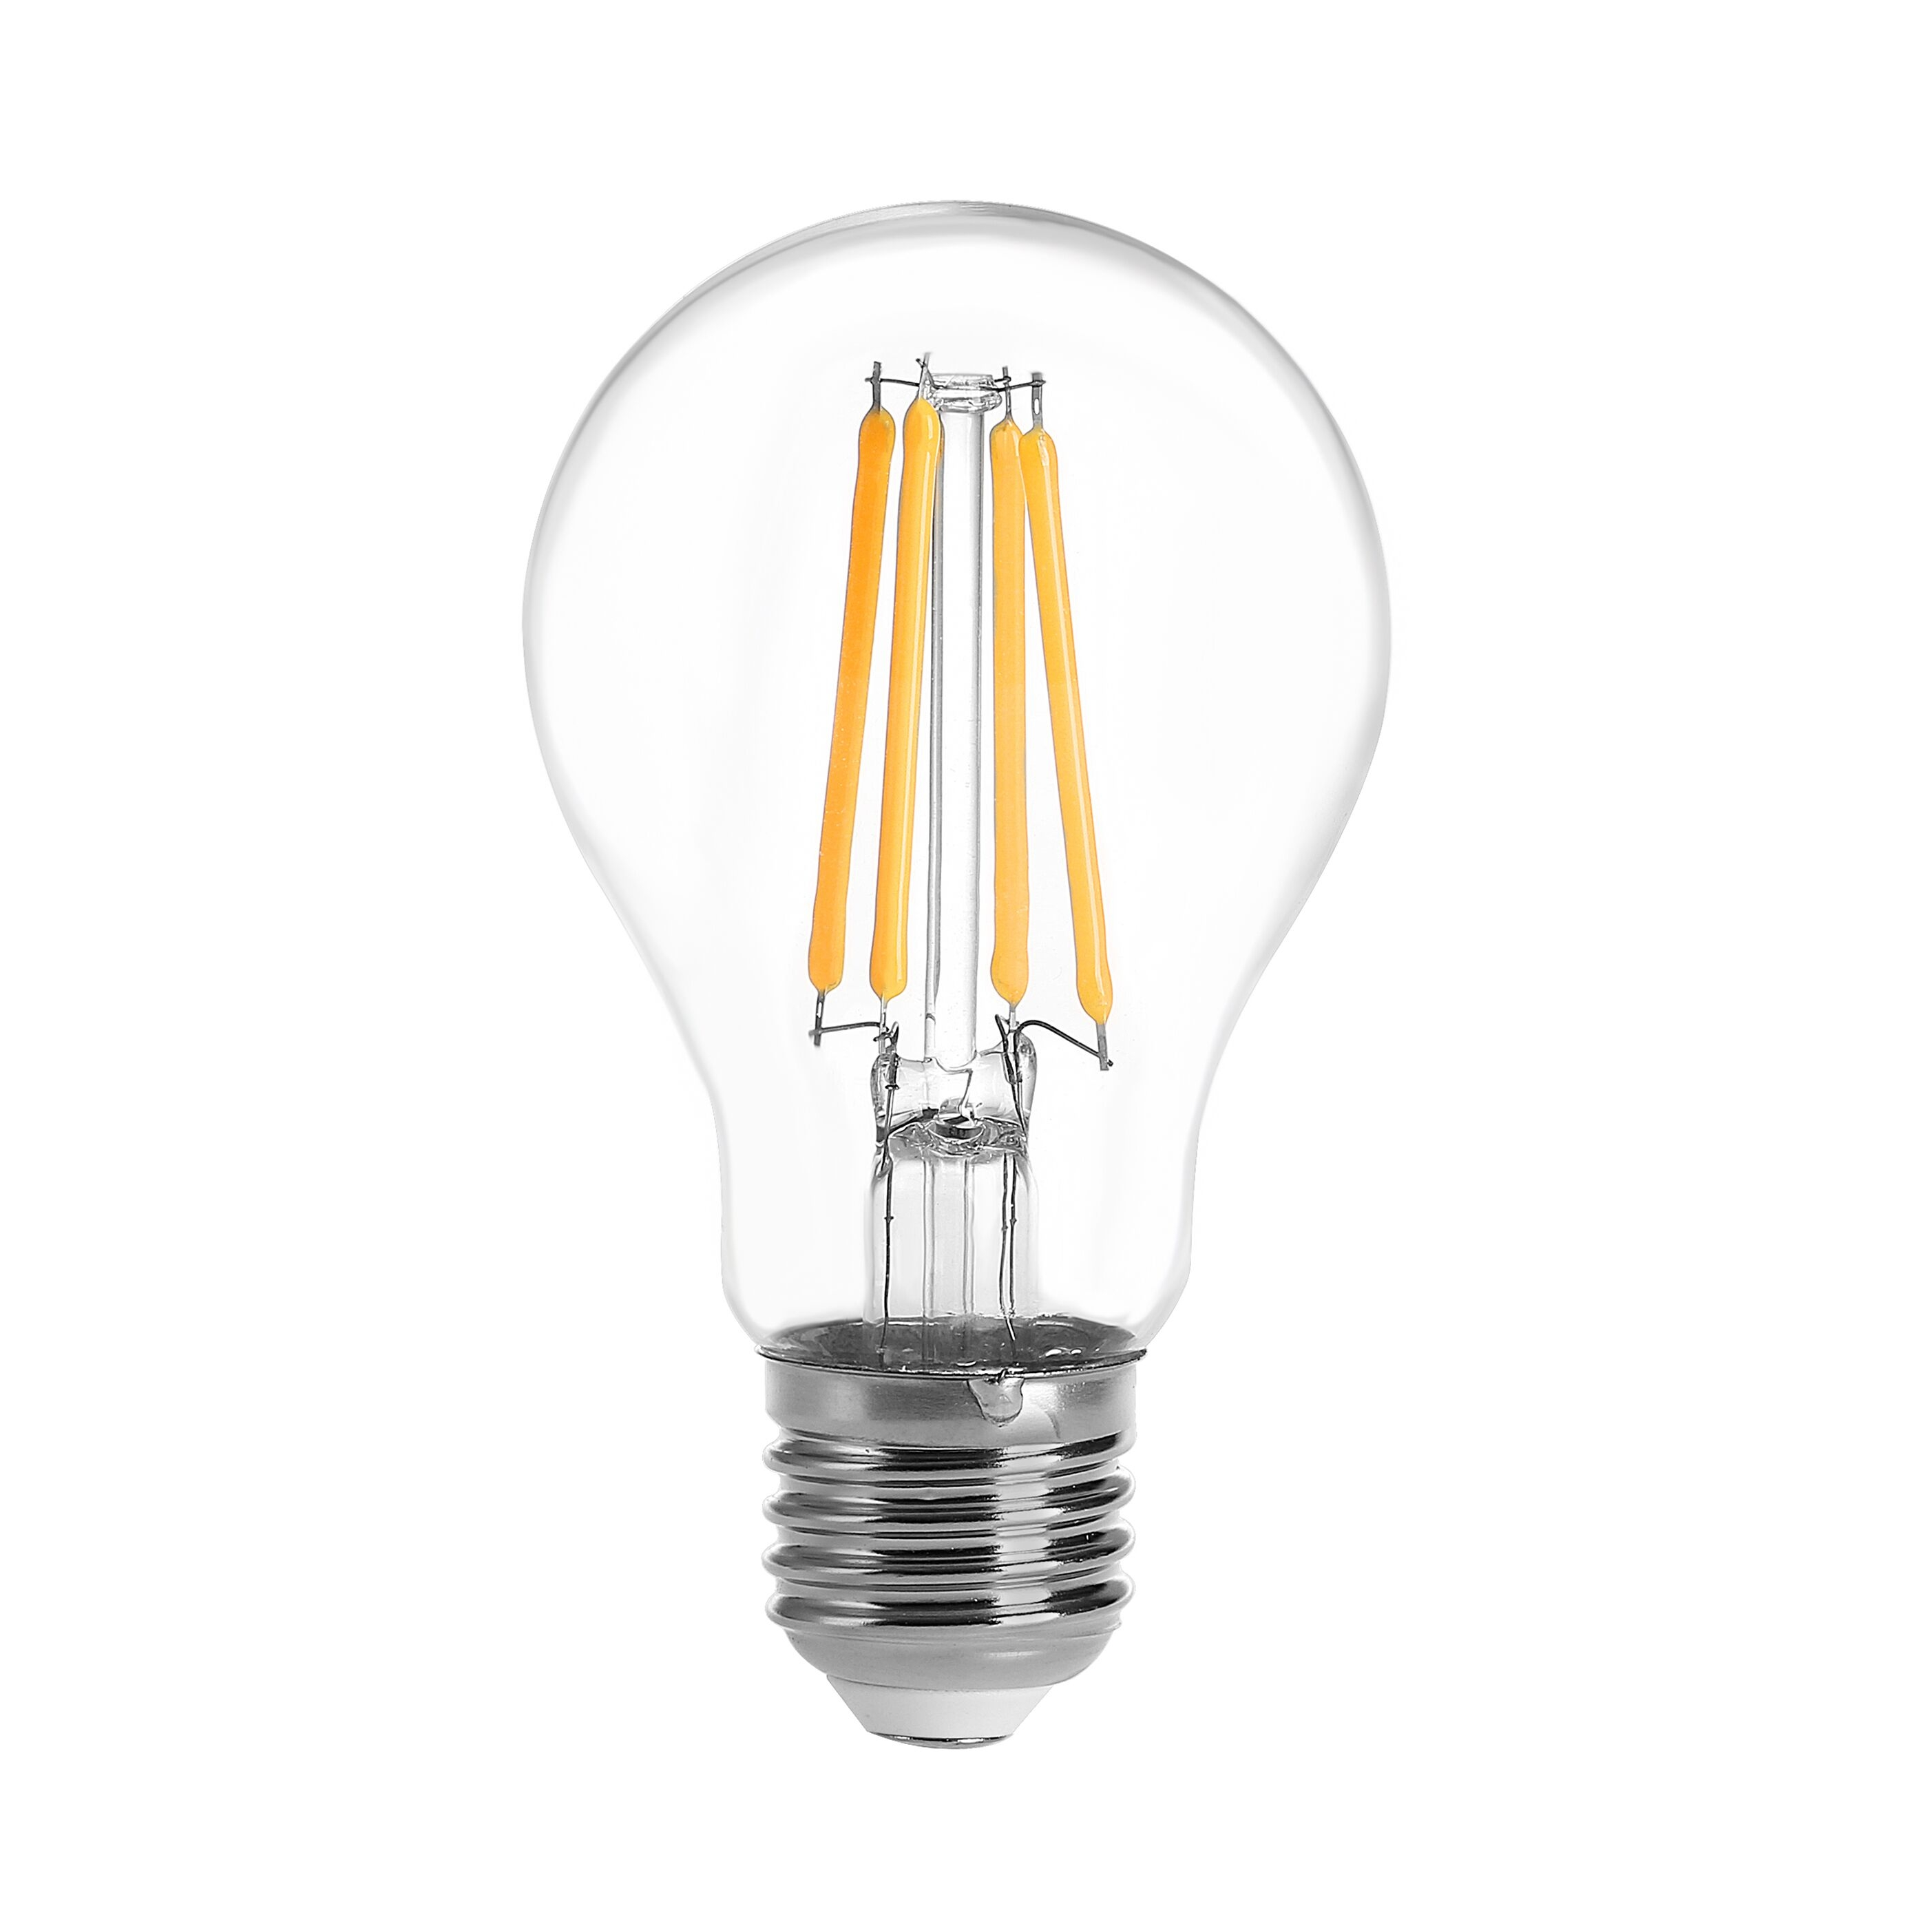 https://www.ledlightingsupplierchina.com/upfile/product/LED-Filament-Light-Bulb-GLS-A19-A60-7W_6.jpg